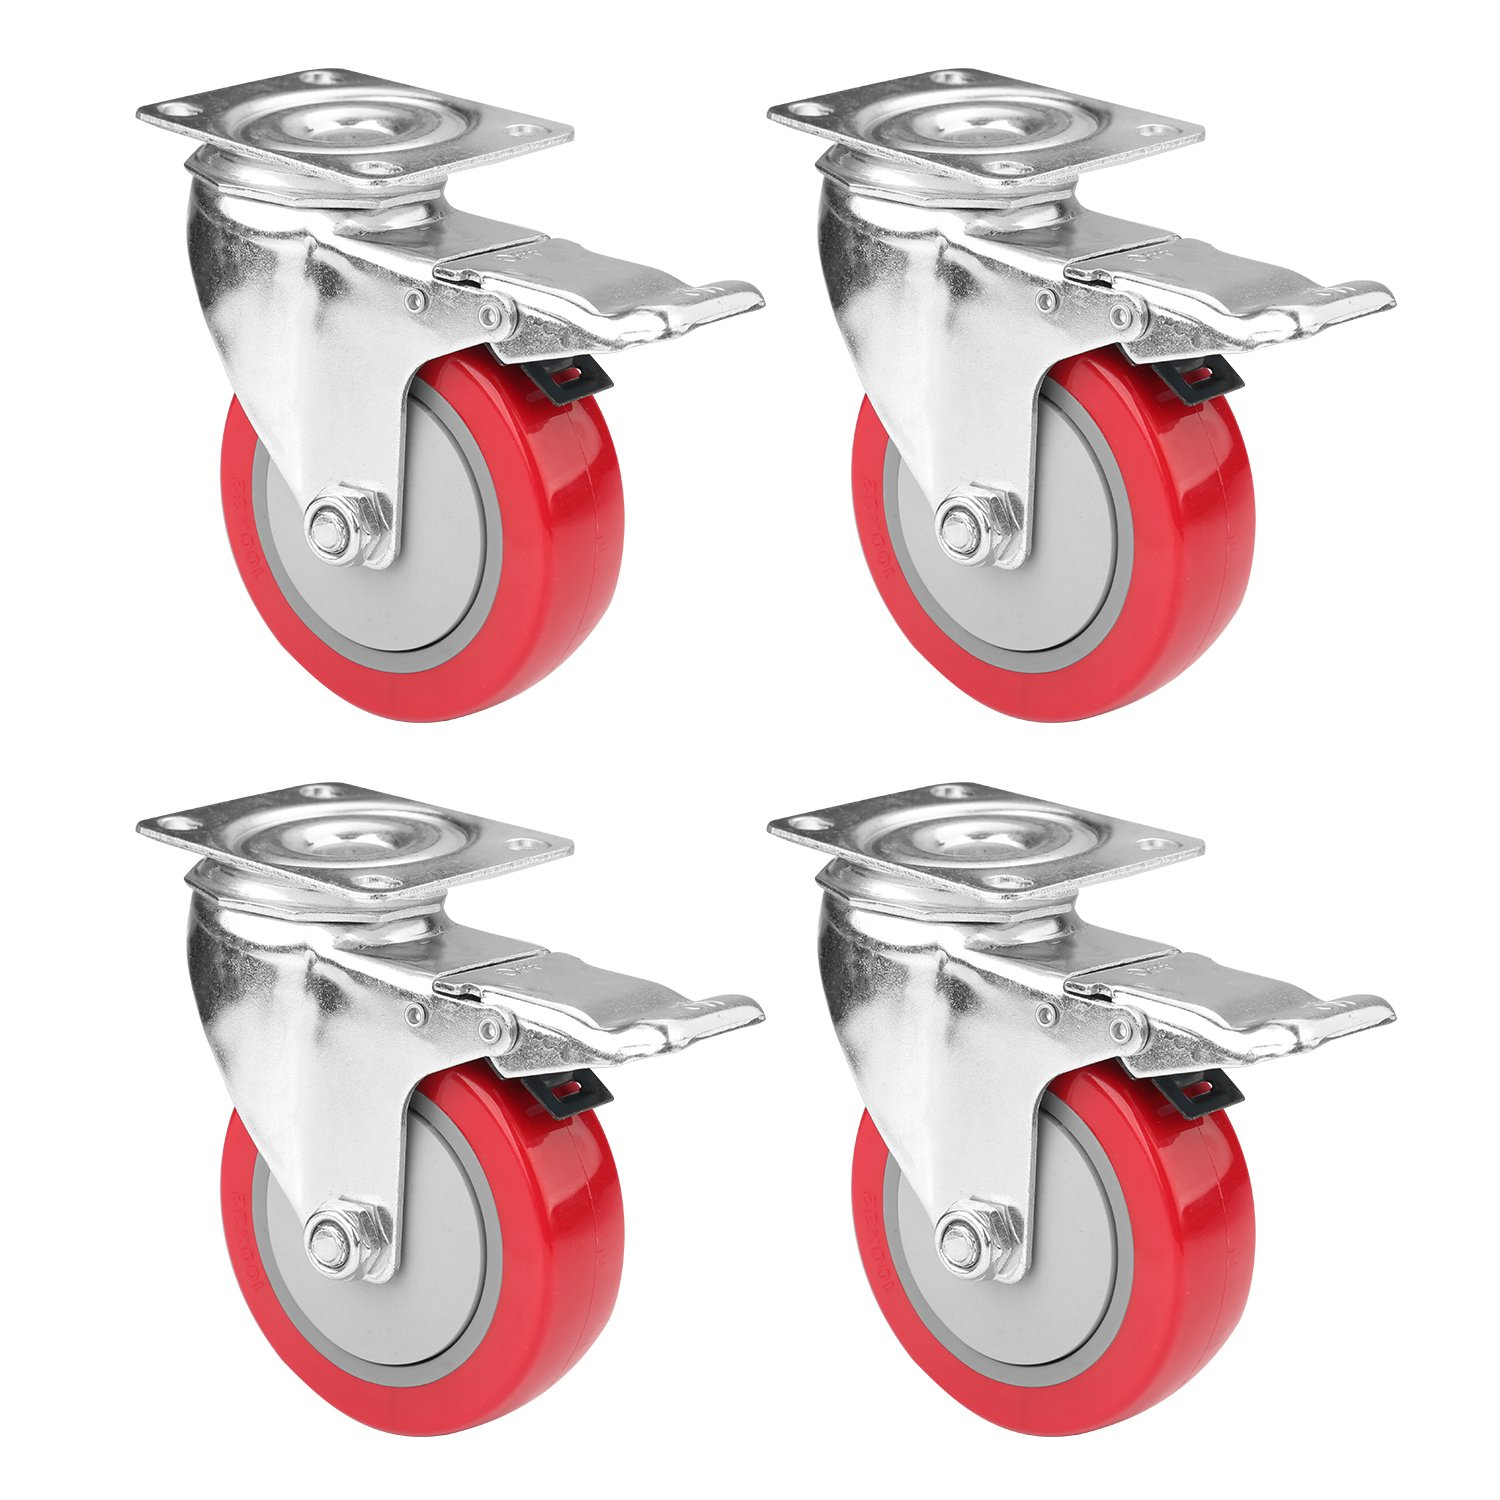 4'' Swivel Plate Caster Wheels, PRITEK Heavy Duty Metal Caster Wheels Lock the Top Plate and the Wheels Replacement for Industrial Trailer or Large Home Furniture (bearing 250lbs each, set of 4)